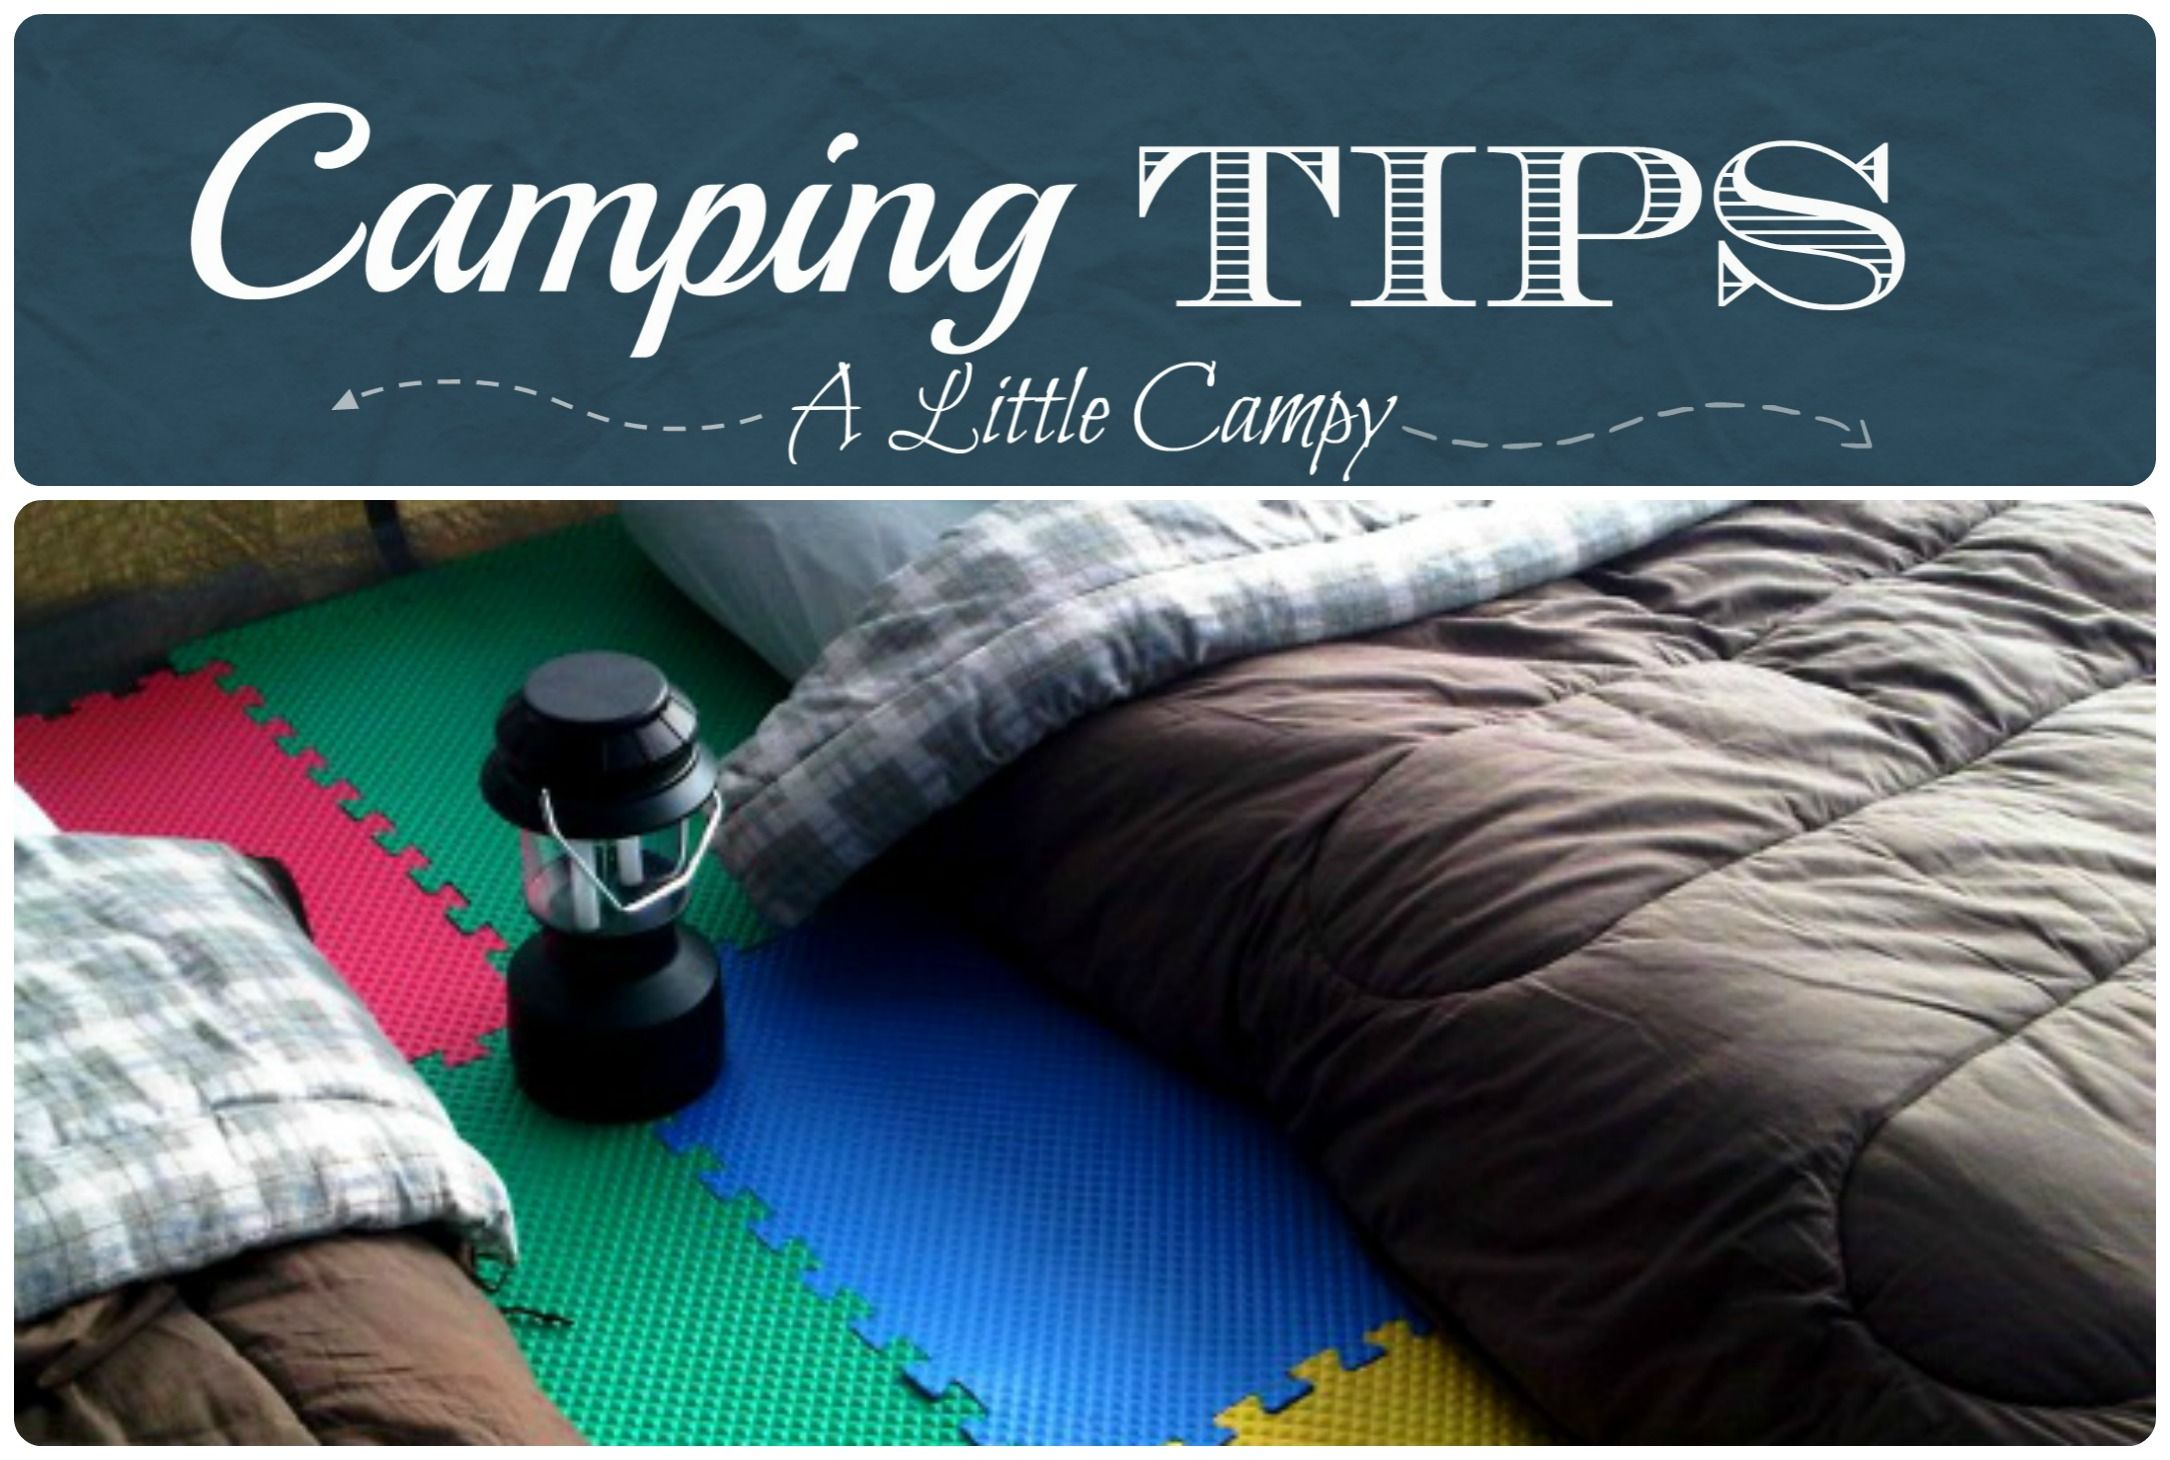 Camping tips from a little campy httpalittlecampy best foam floor tiles for a softer more comfortable tent floor camping 41 camping hacks that are borderlinegenius dailygadgetfo Choice Image